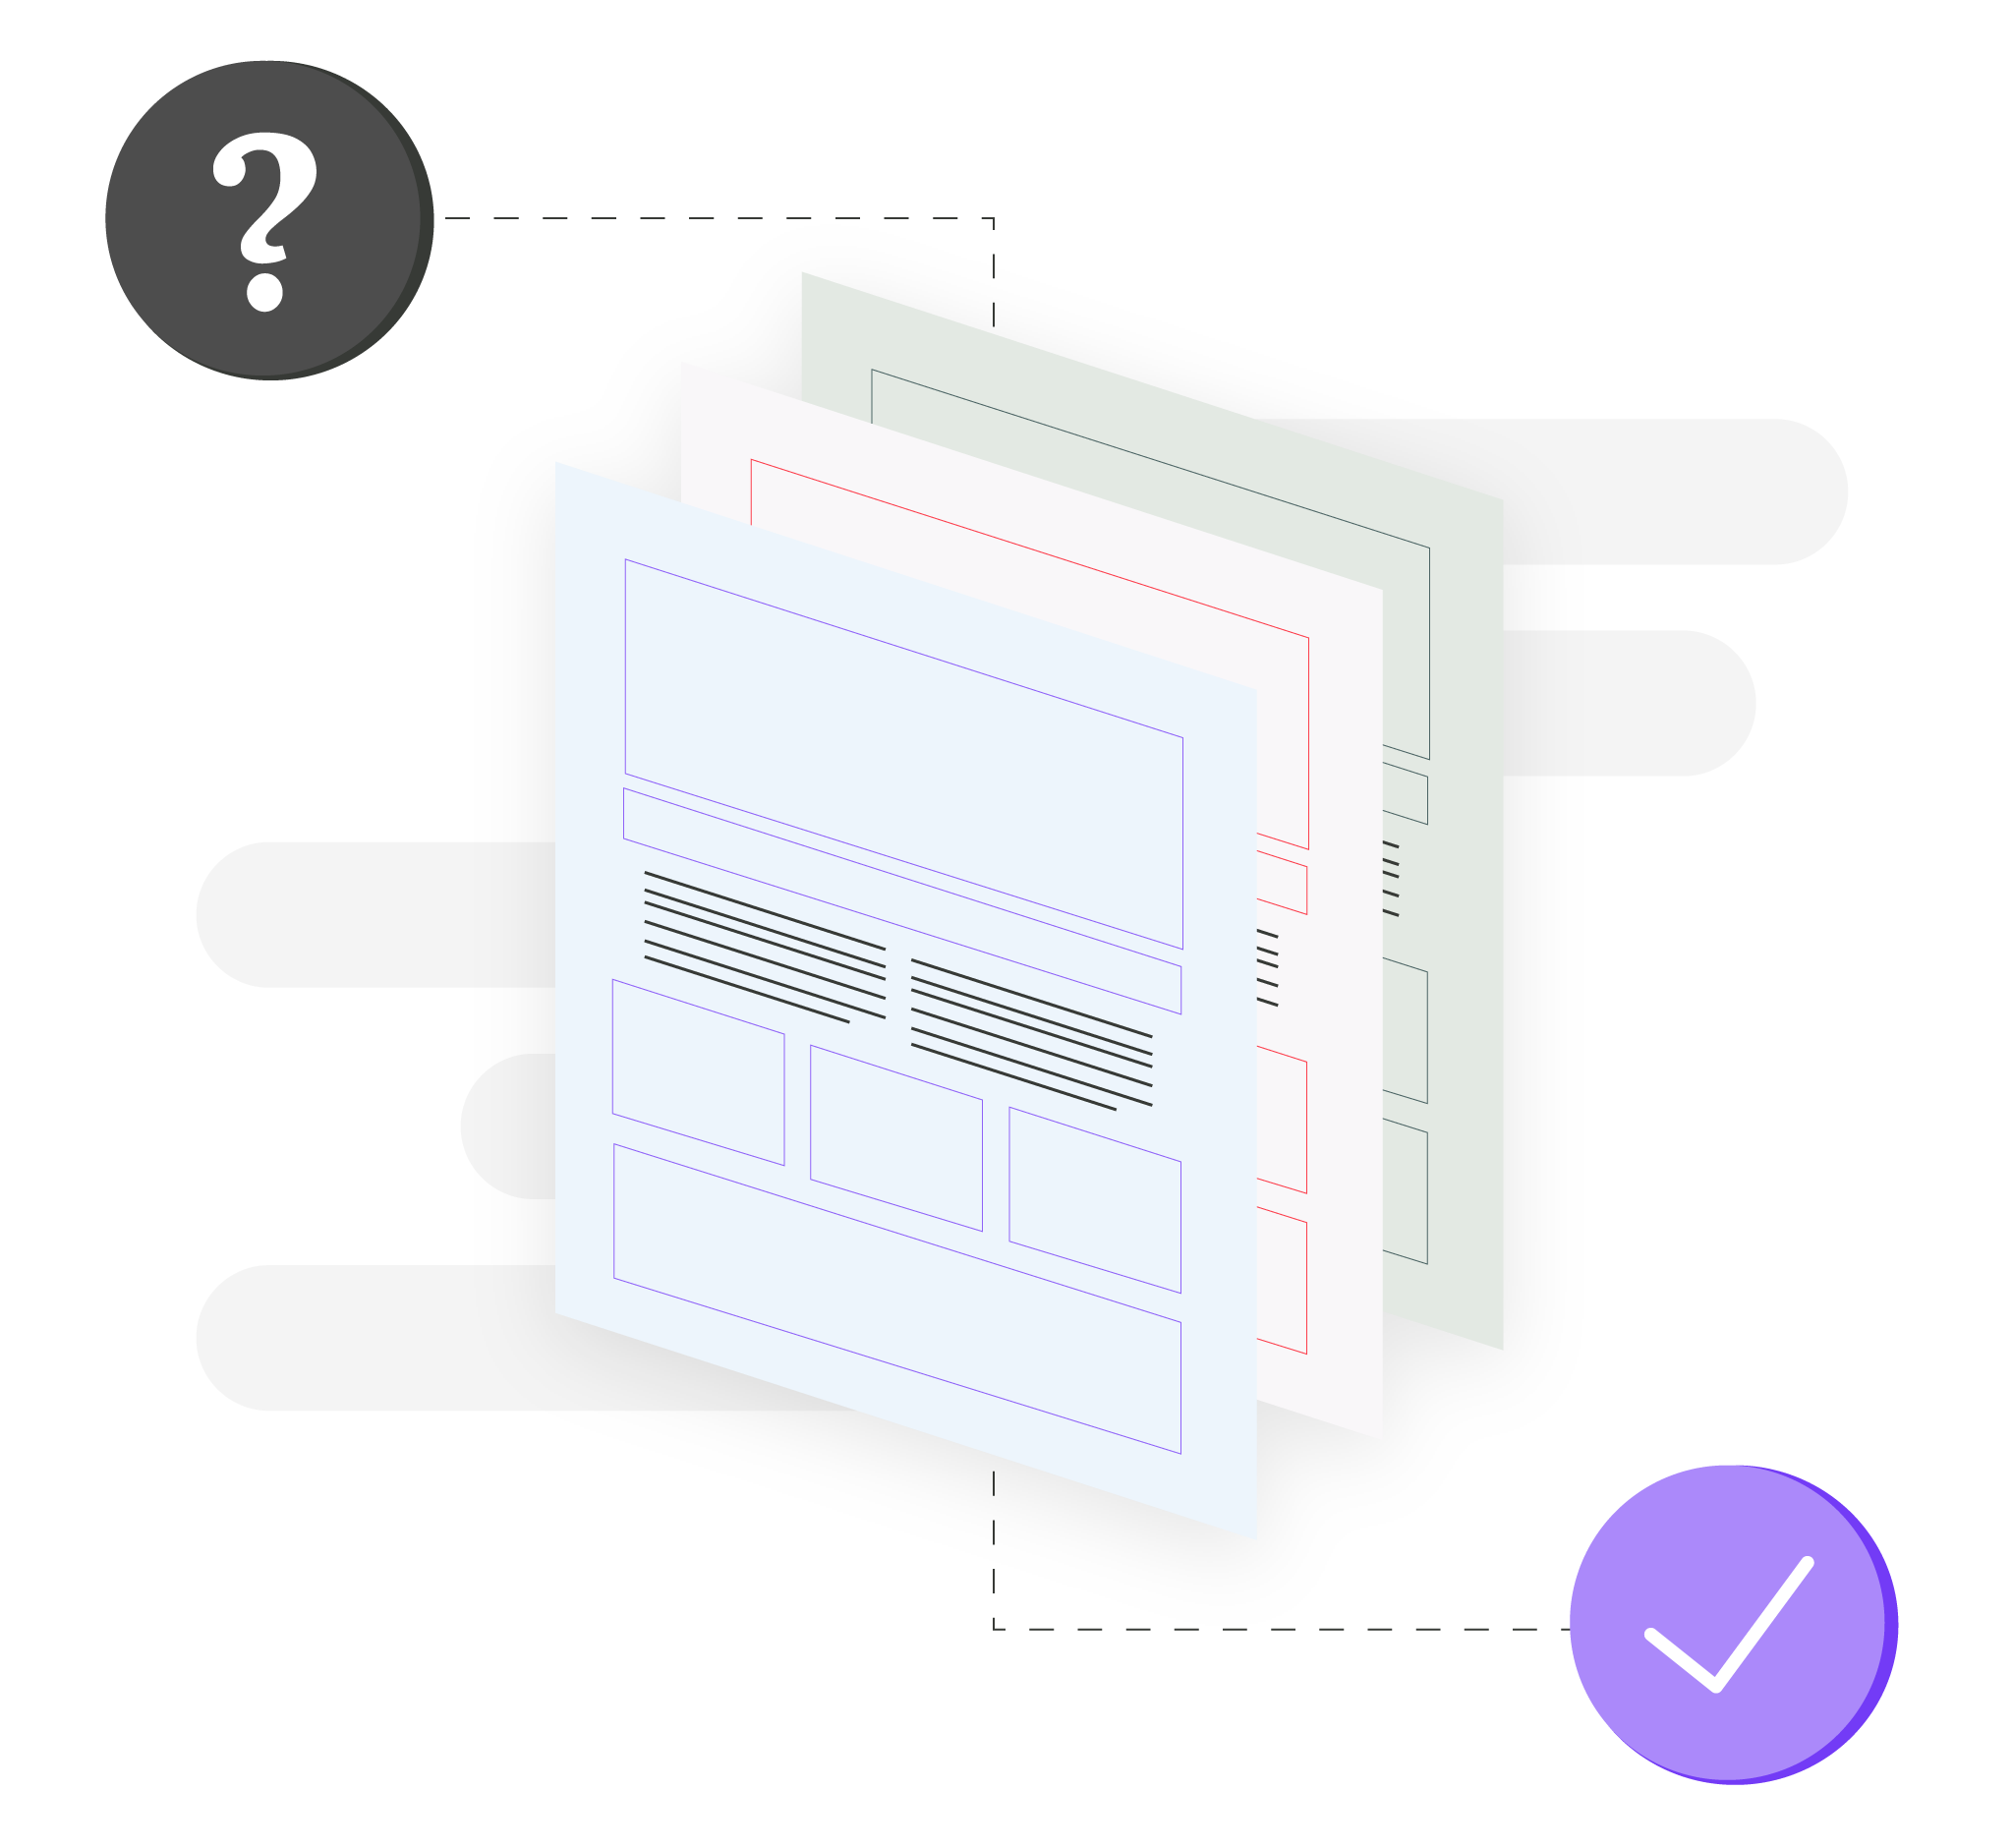 Graphic of website adaptive testing